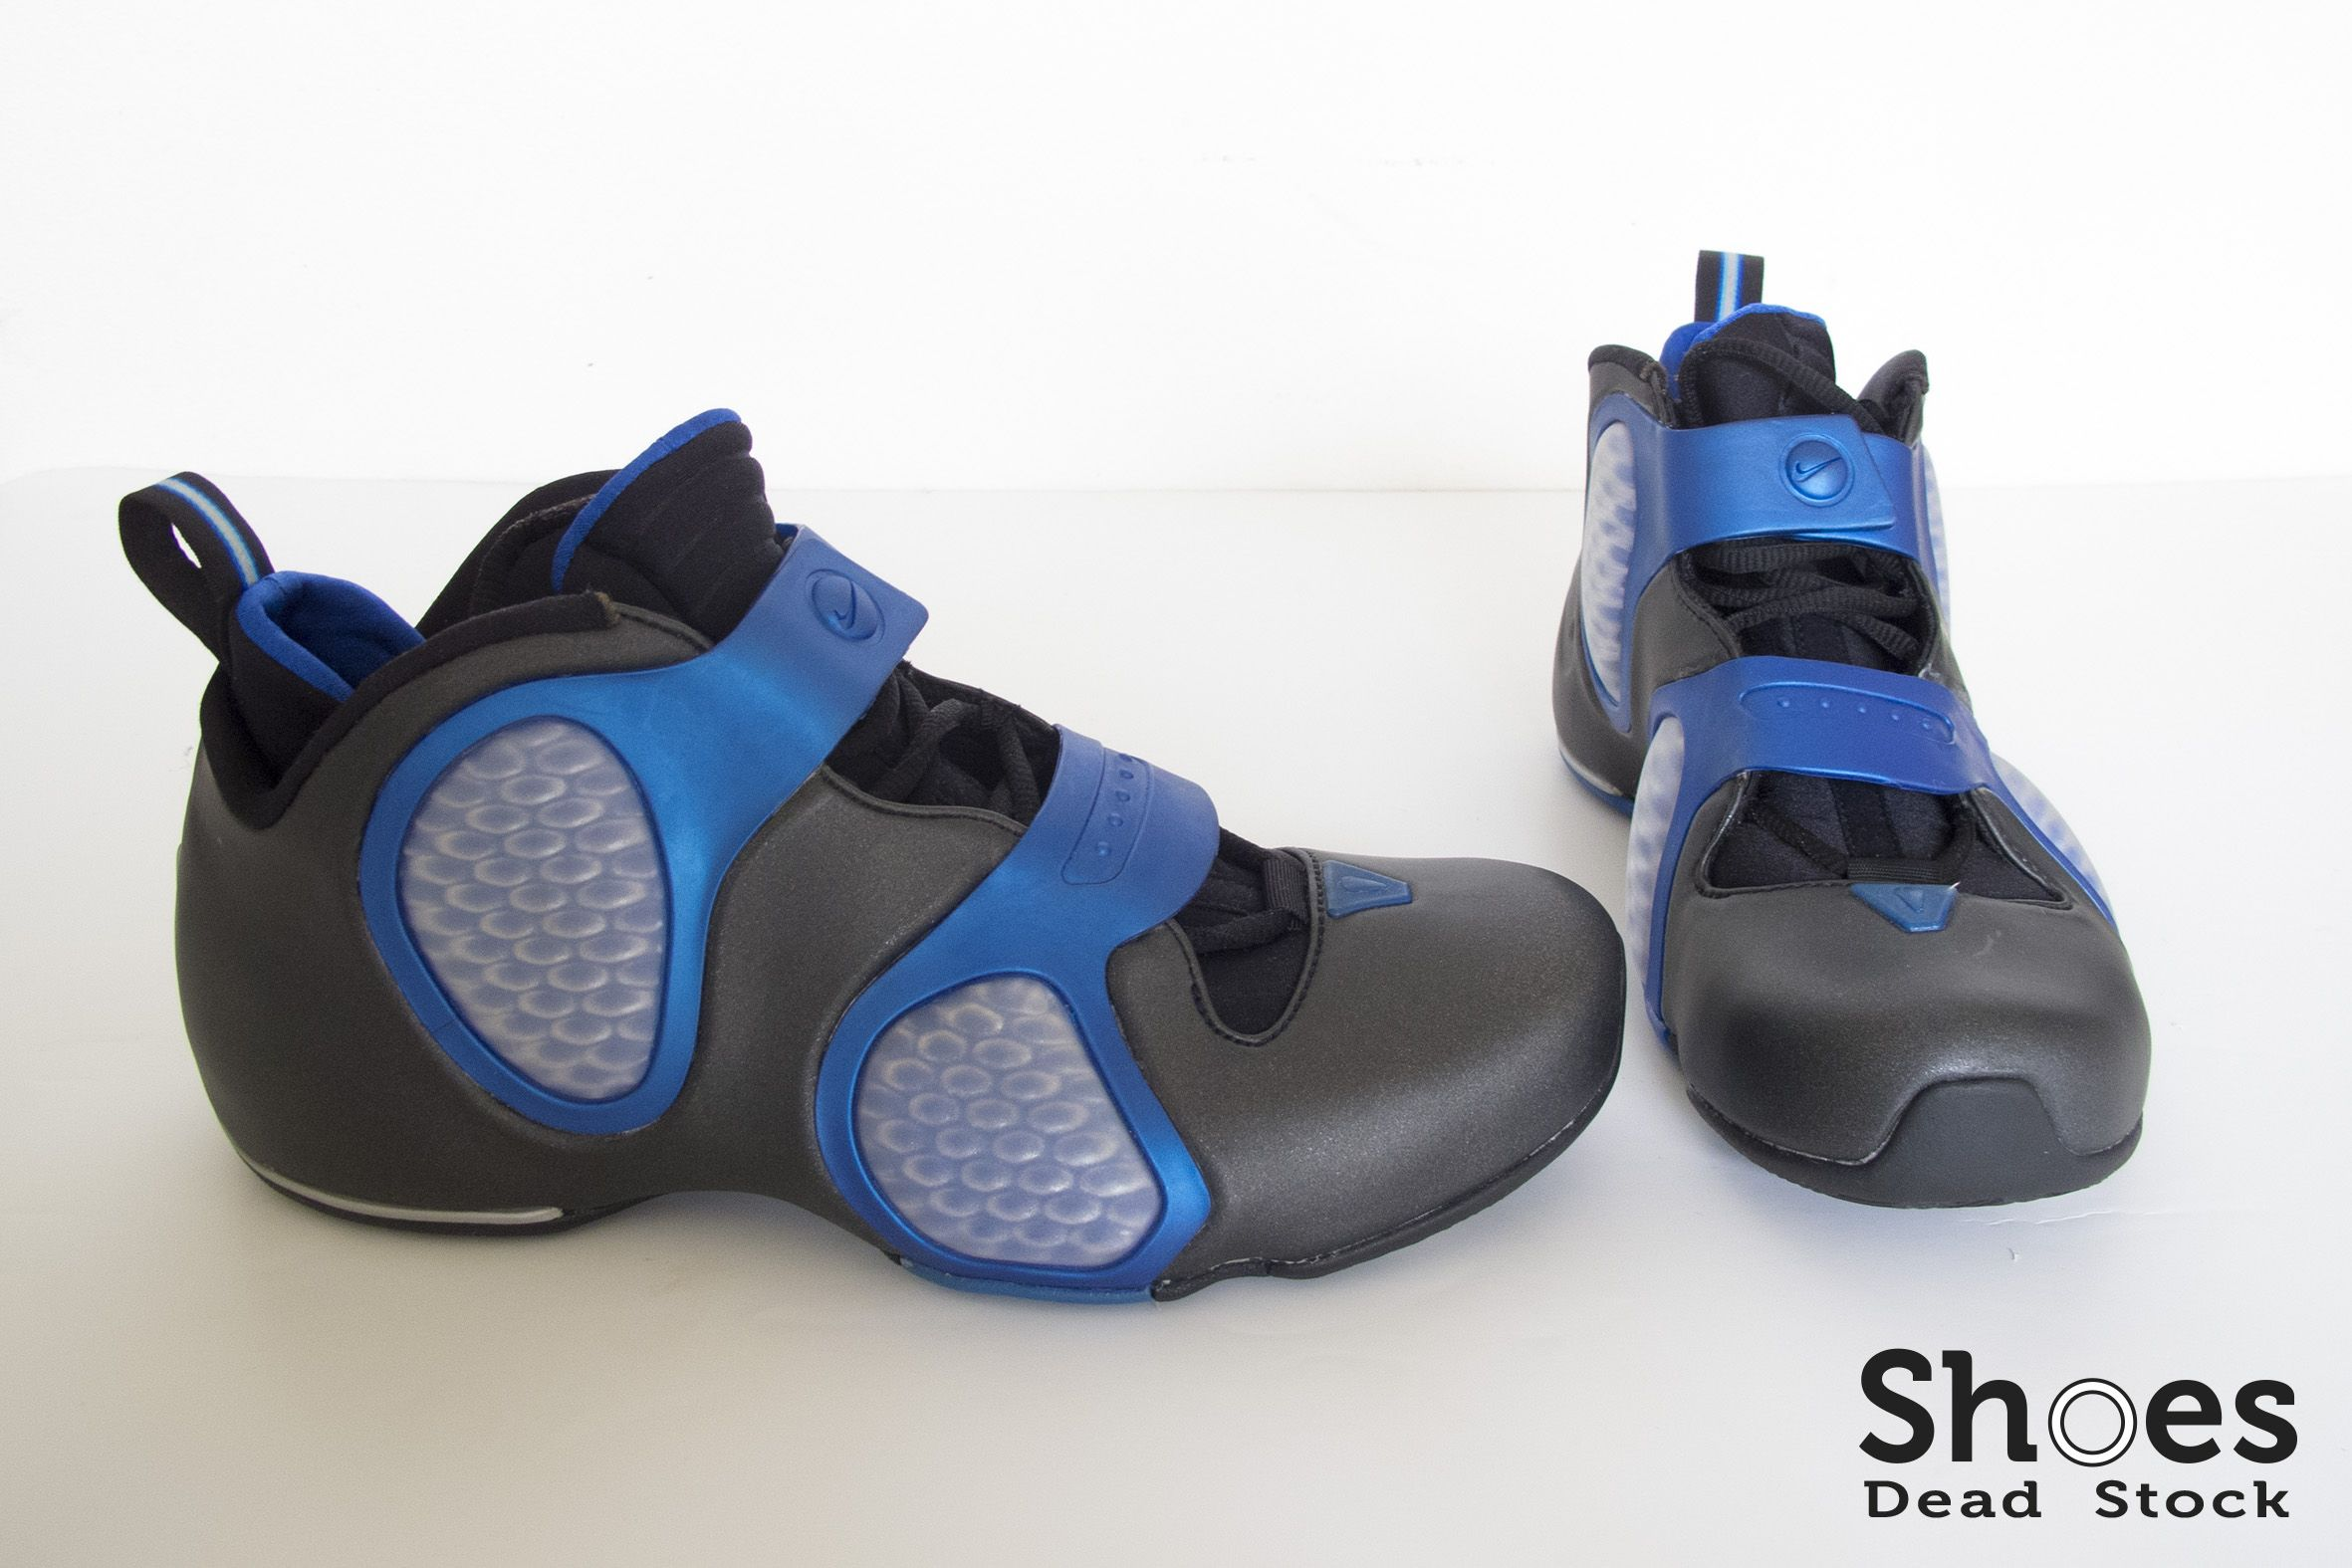 premium selection 88d84 5a7d5 Nike Flightposite 3 - size US 10 EU 44 year of production 2000